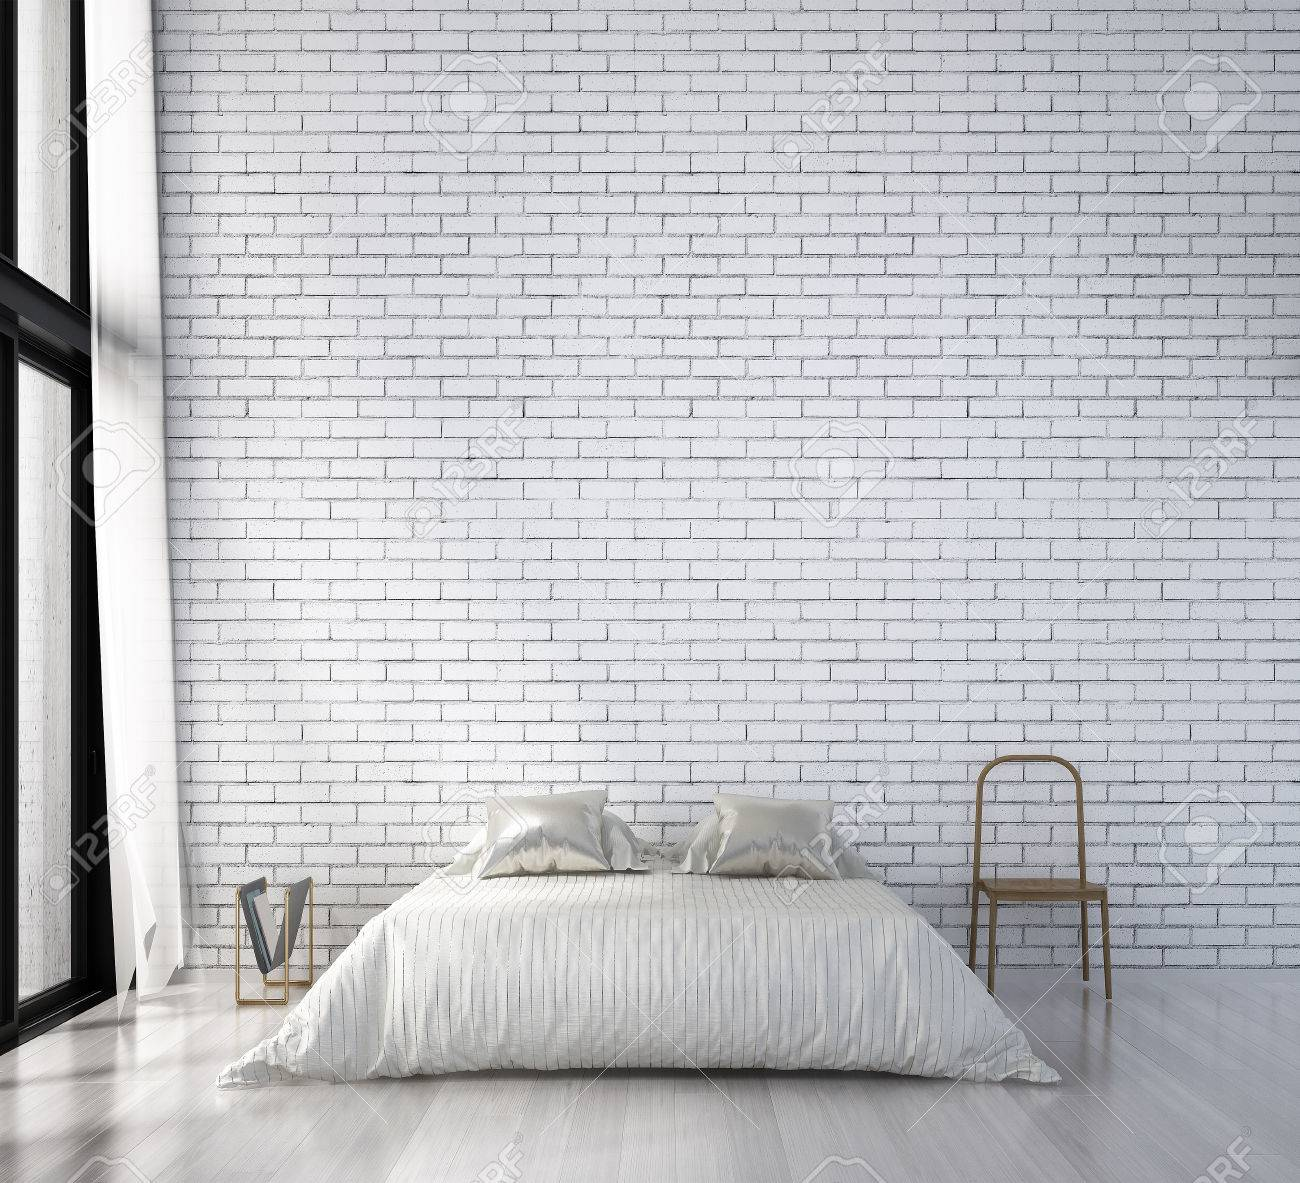 The Minimal Bedroom Design And White Brick Wall Stock Photo Picture And Royalty Free Image Image 79857449